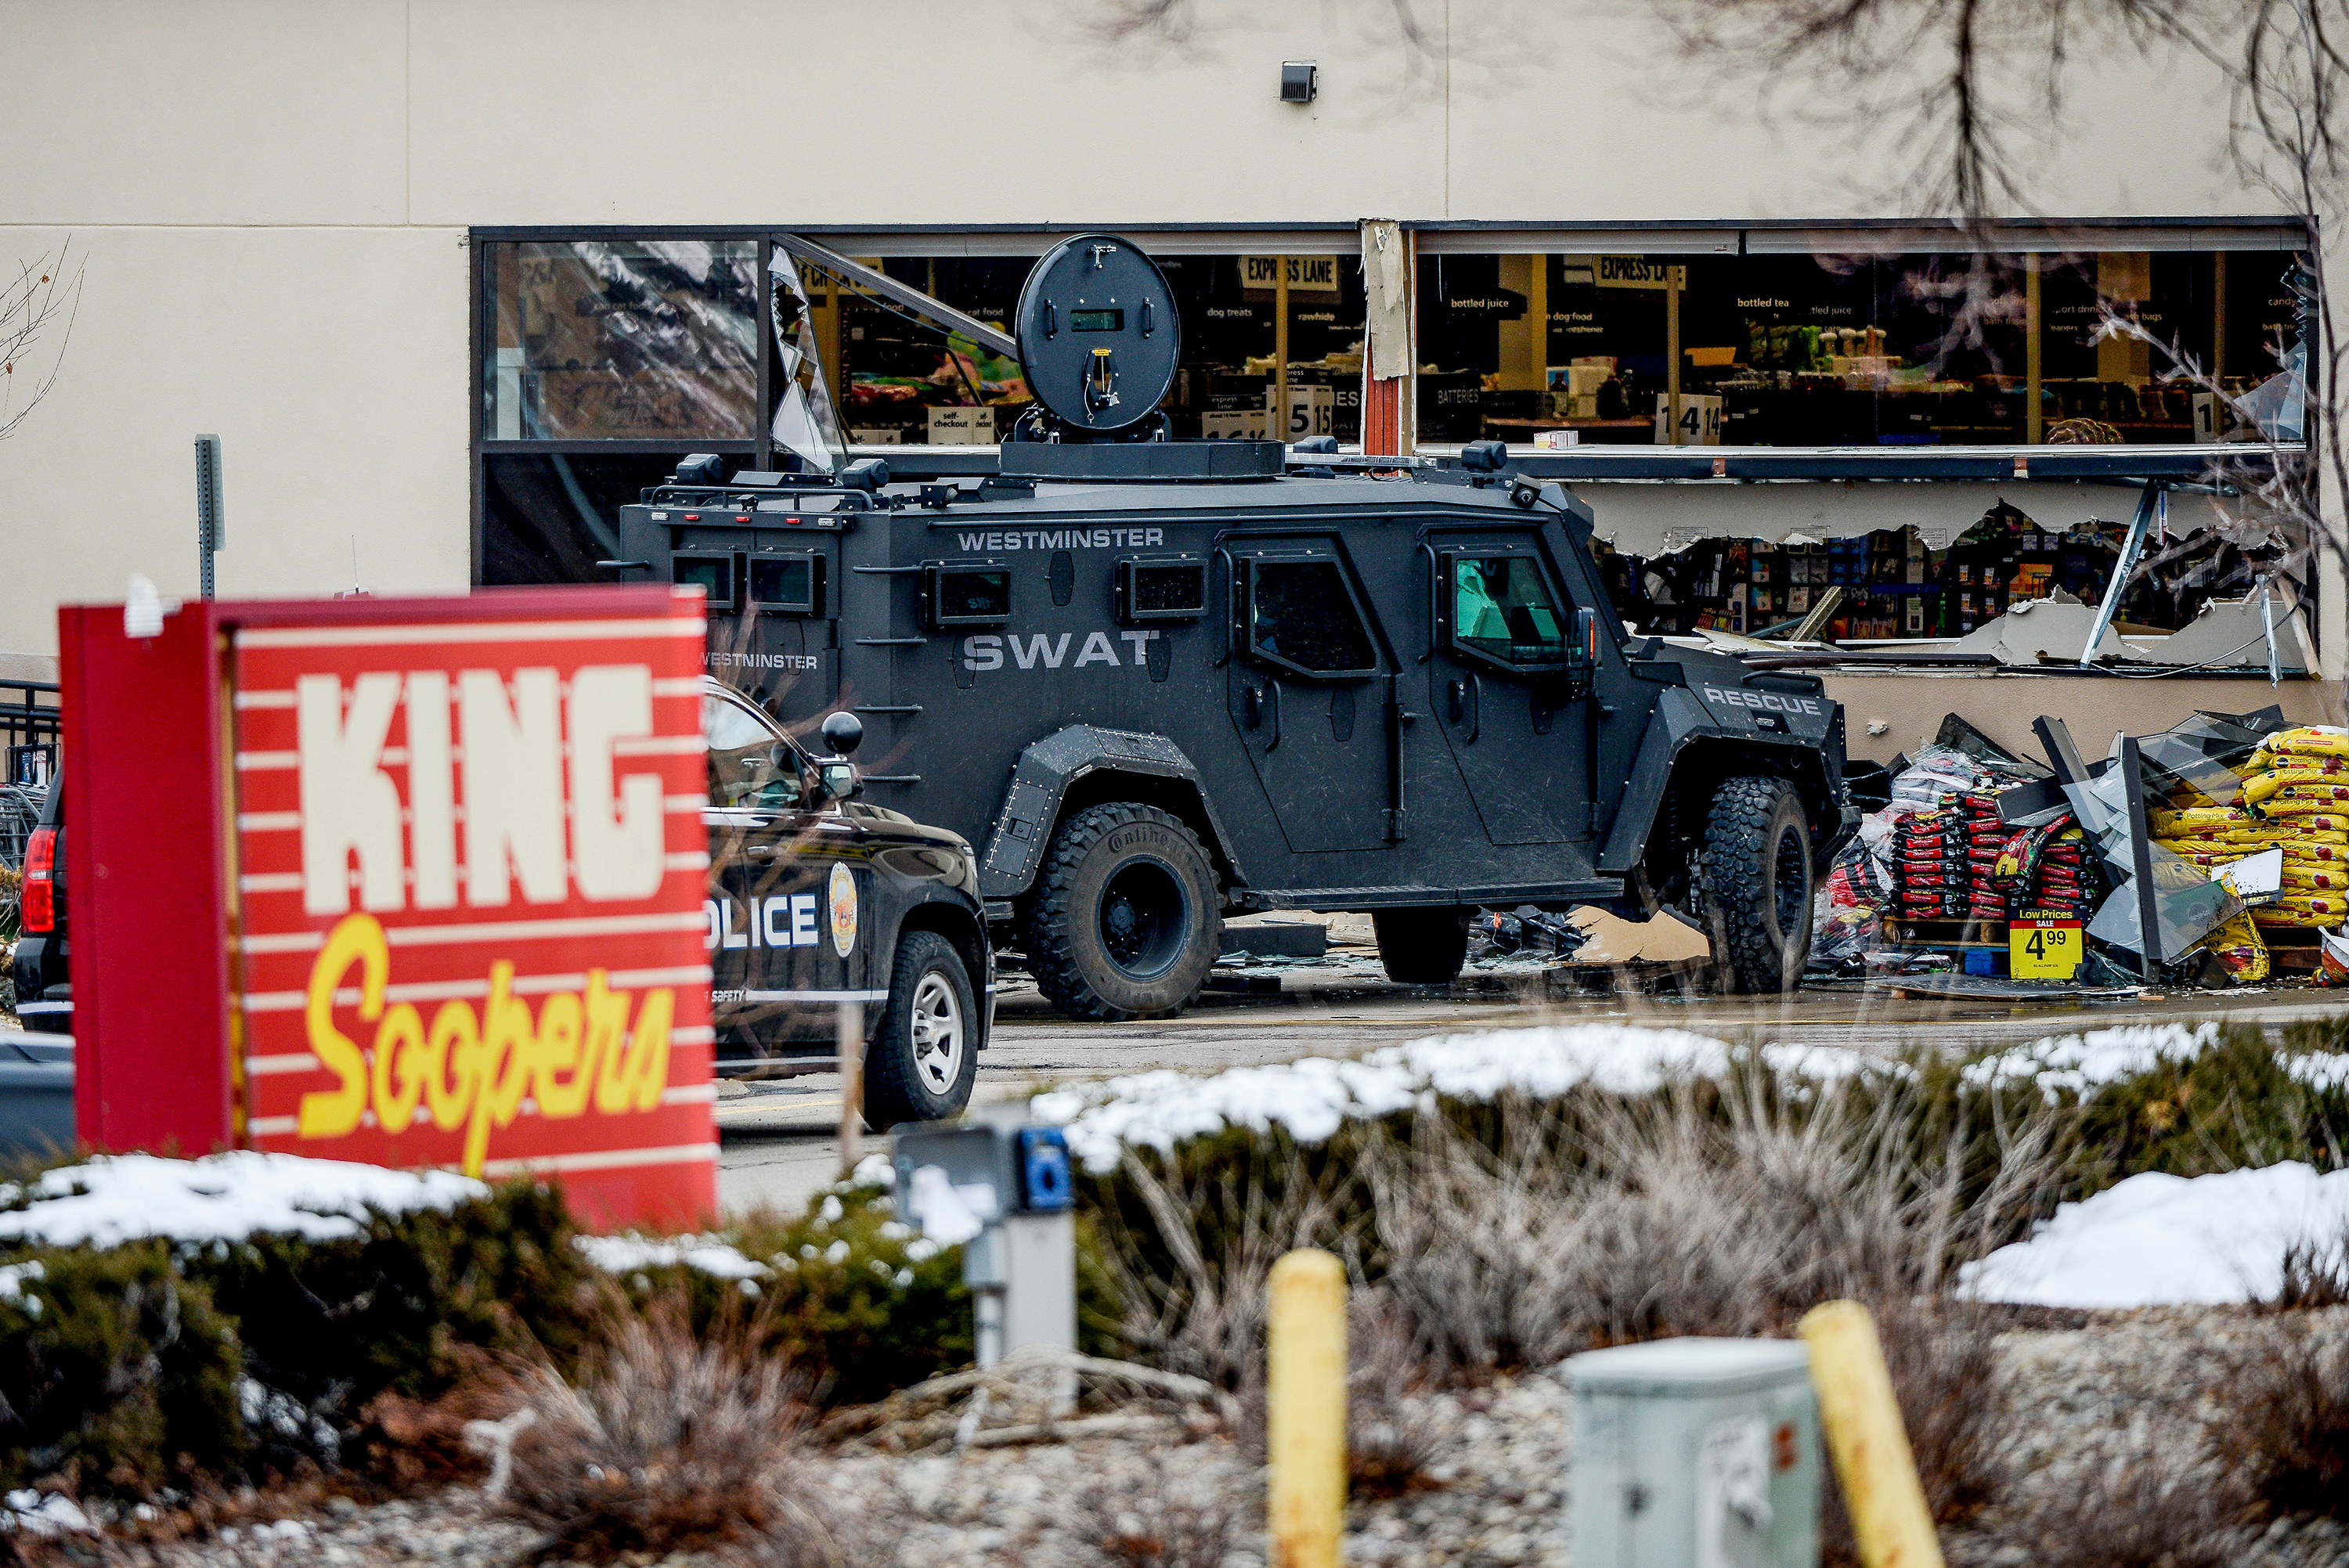 A SWAT vehicle and a police car in the parking lot of King Soopers